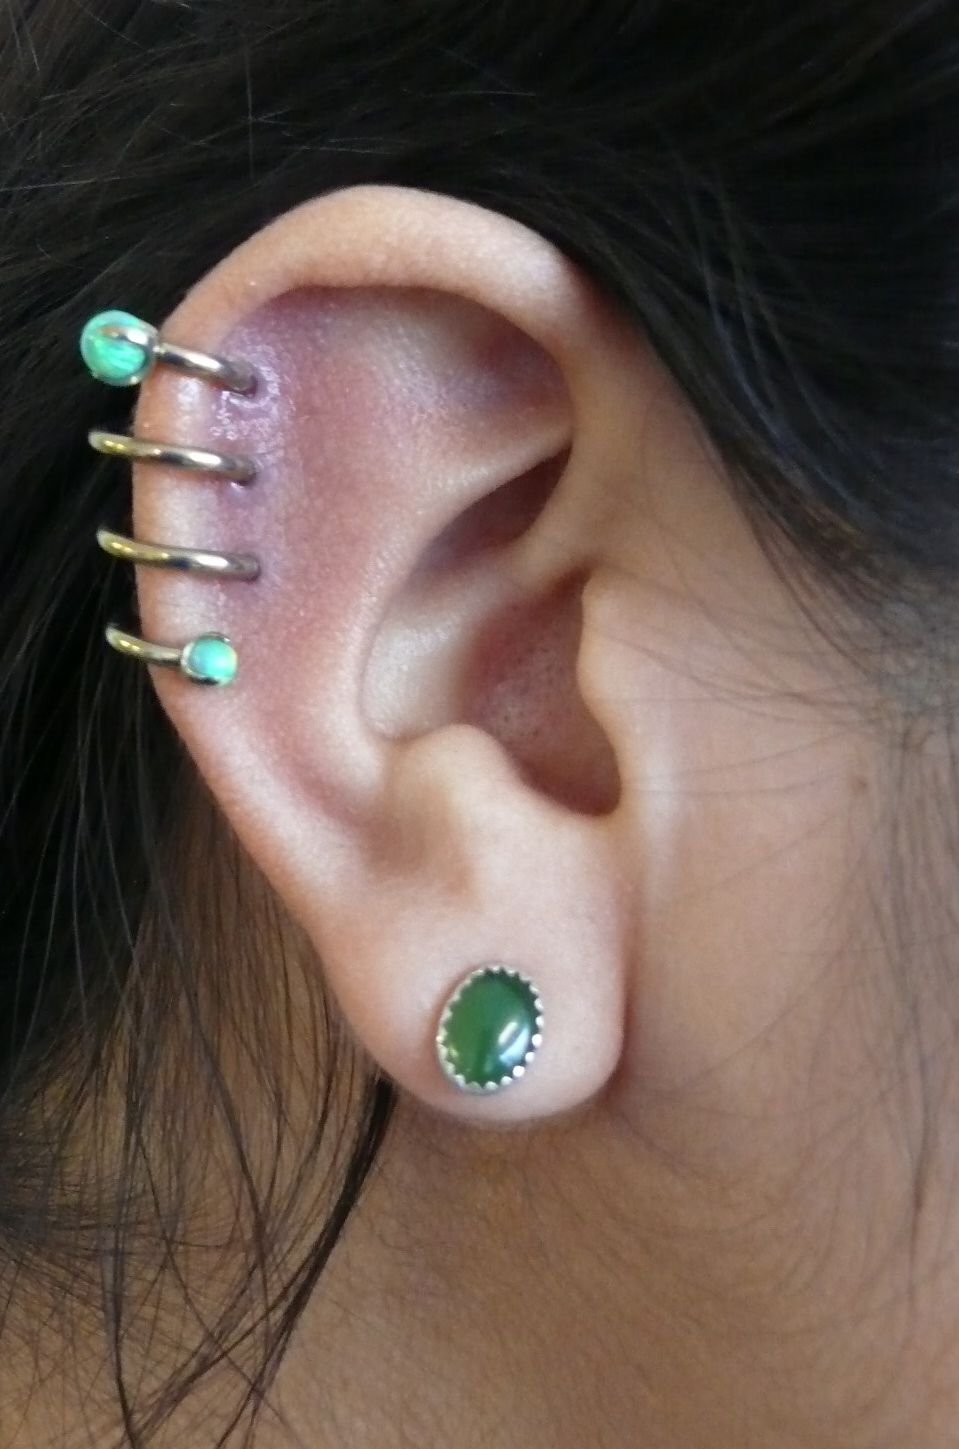 i have been contemplating the spiral piercing for some time now